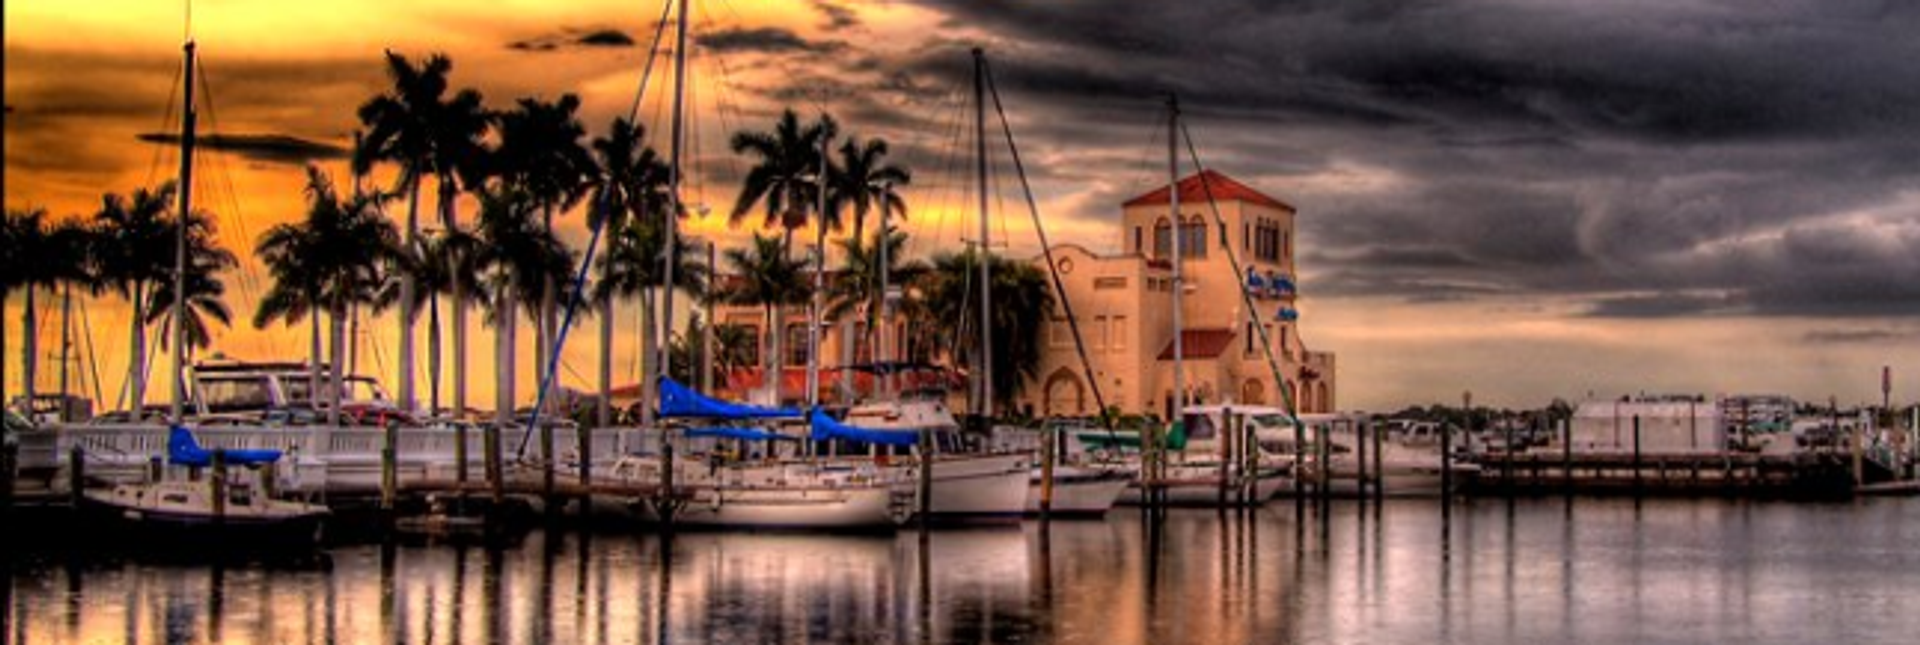 Ride2guide Com Things To Do In Bradenton Fl